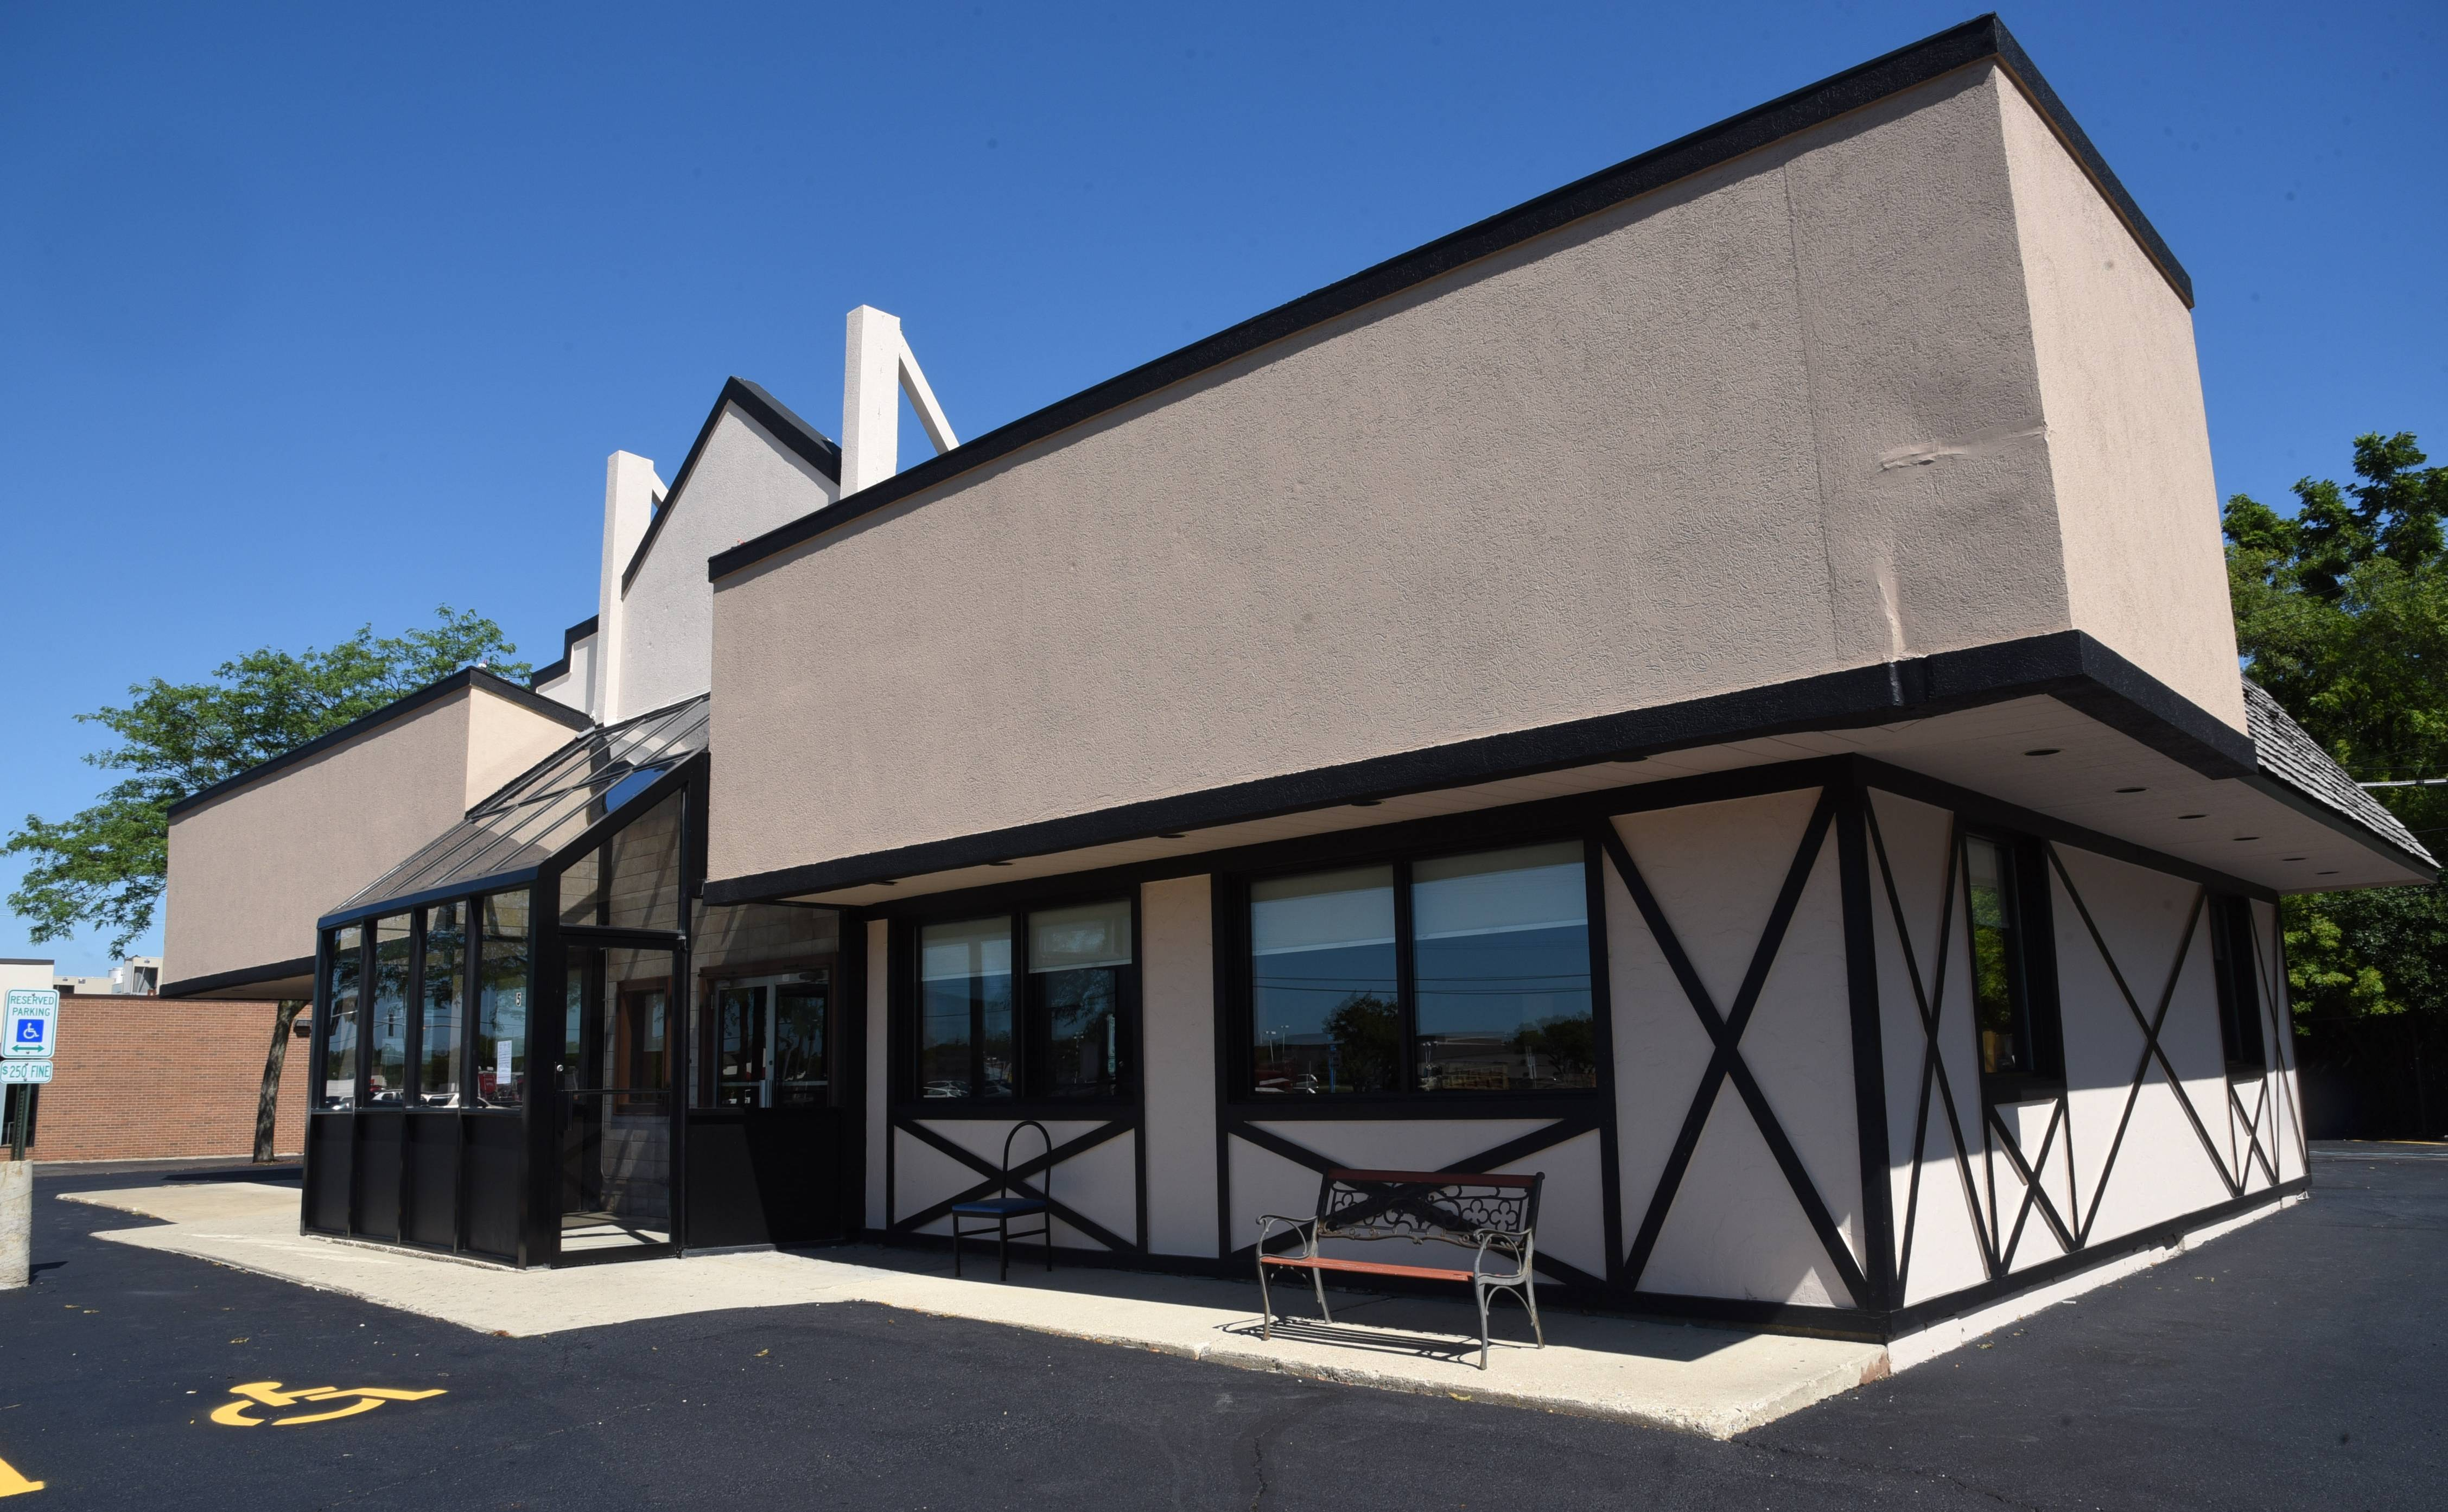 Molly's Pancake House will soon replace the former White Alps restaurant on Route 22 in Lake Zurich.